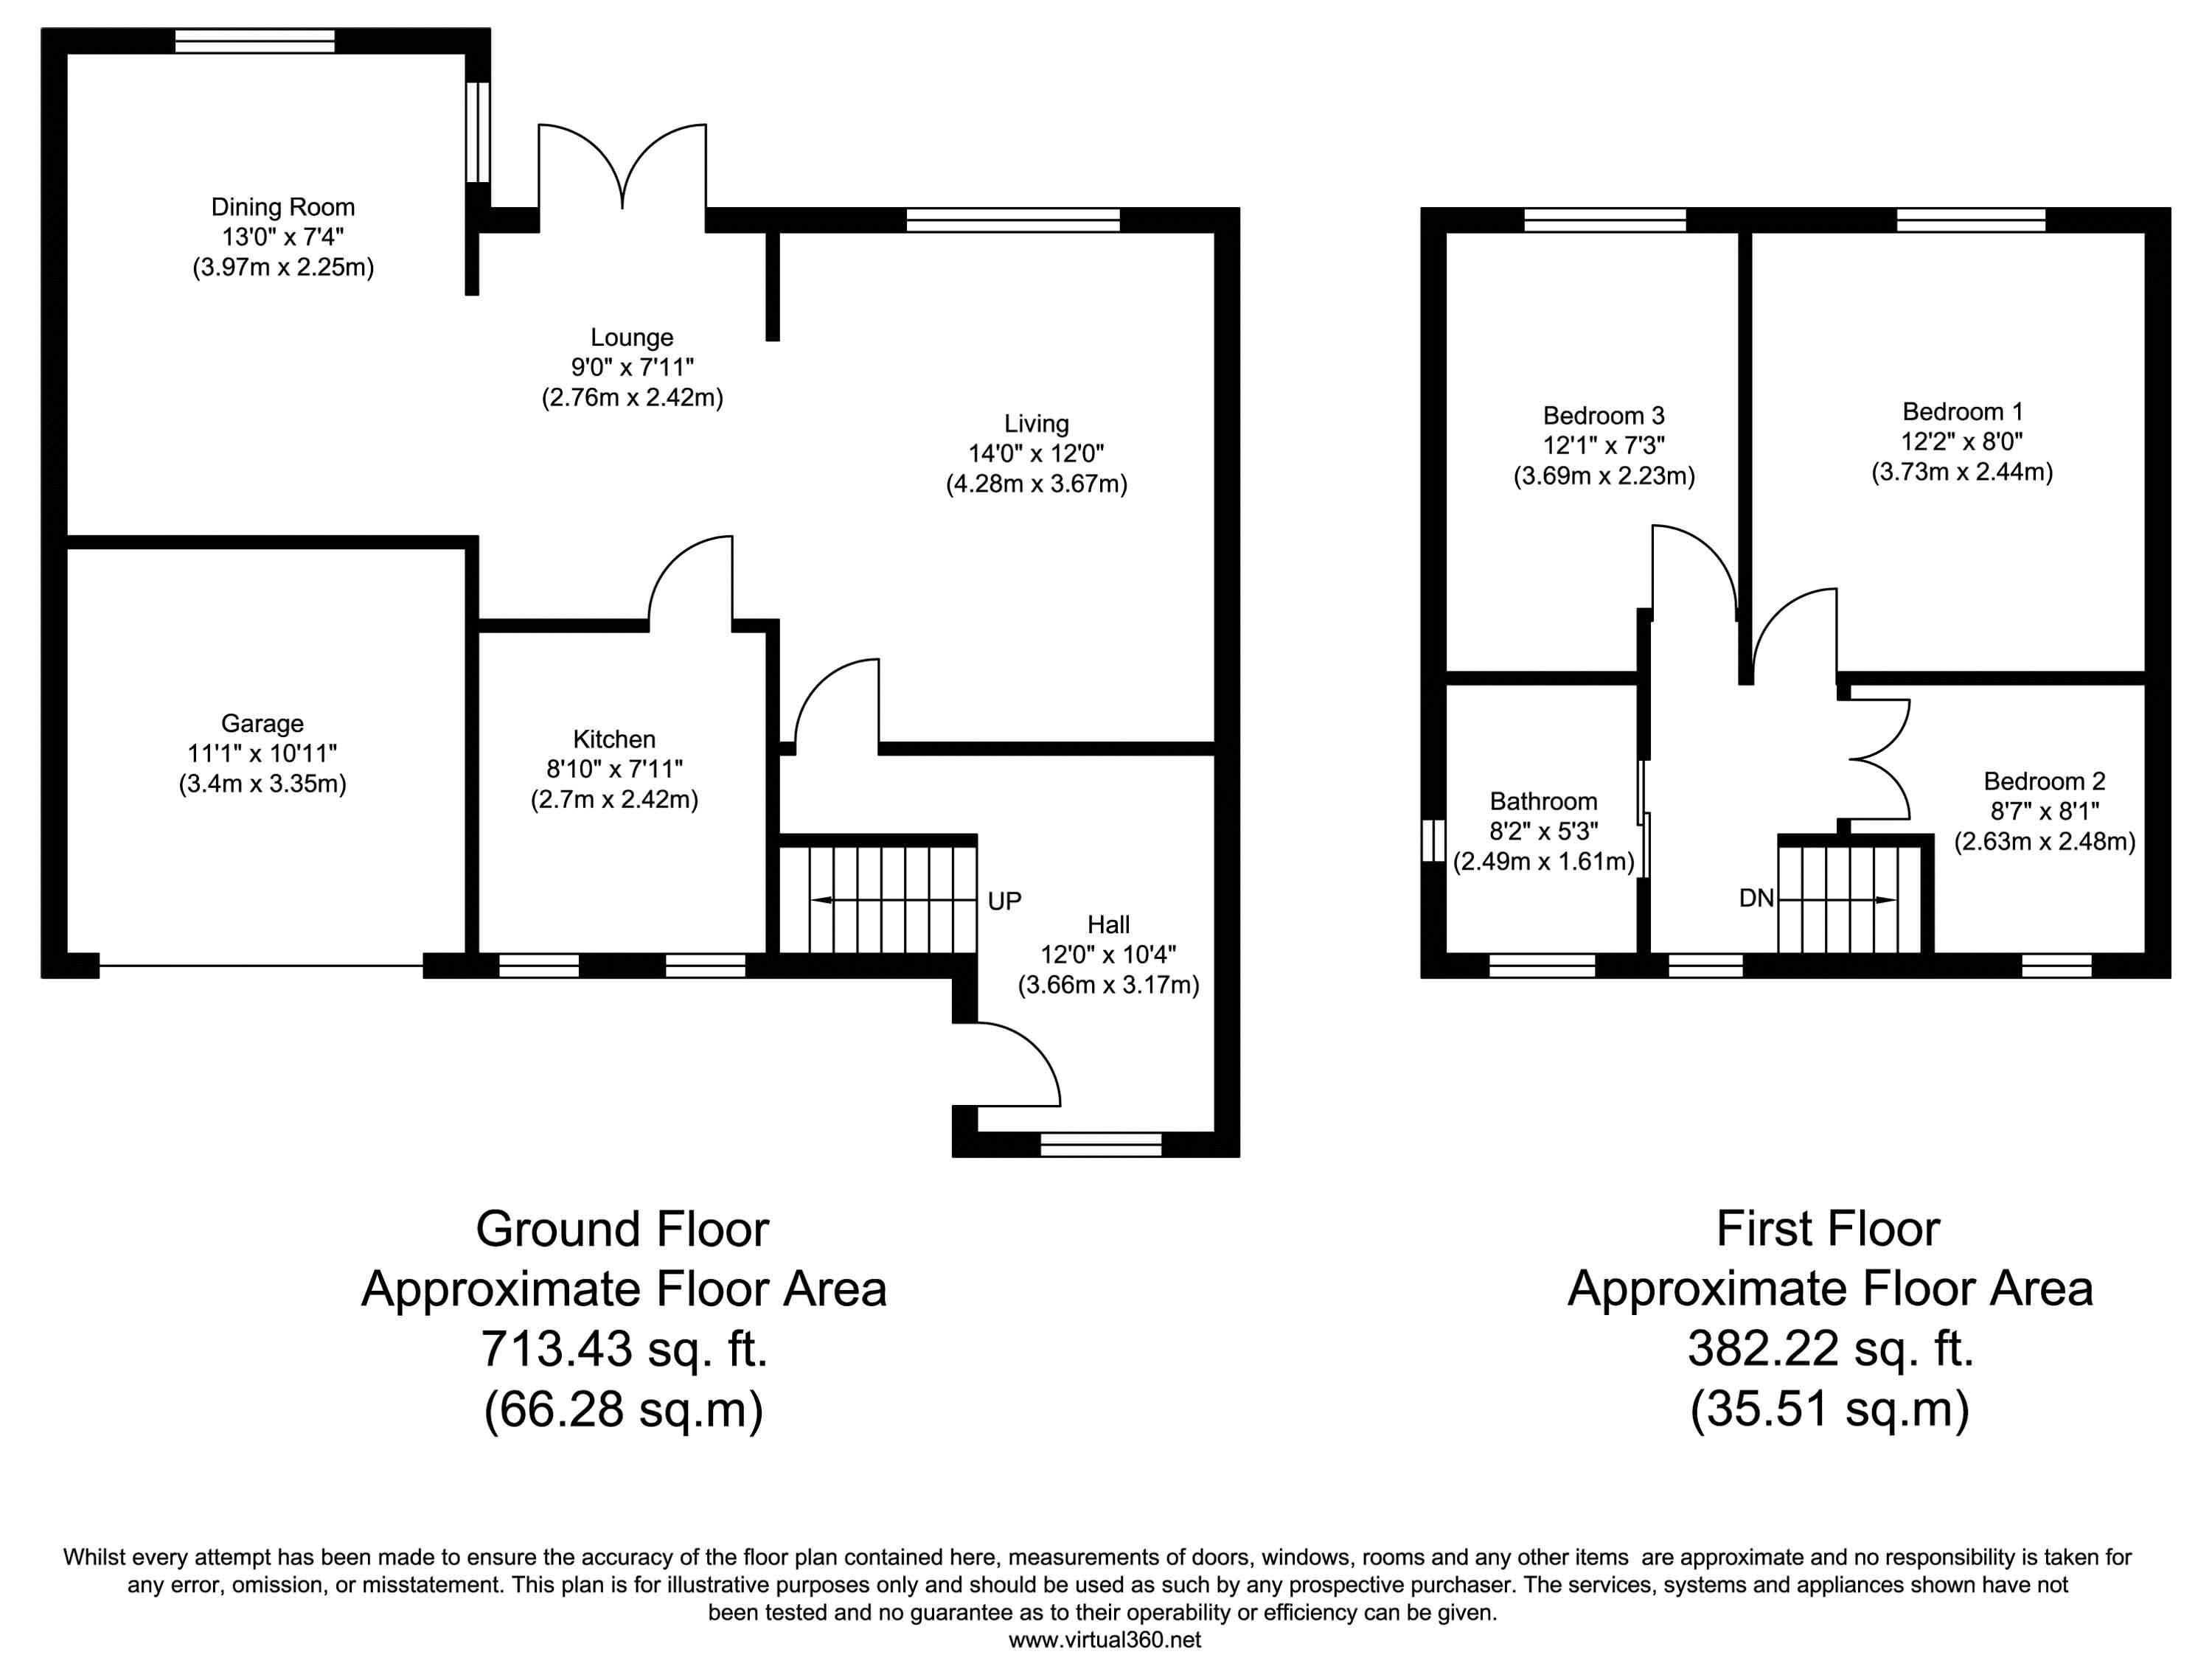 St Stephen Road, Warrington floor plan